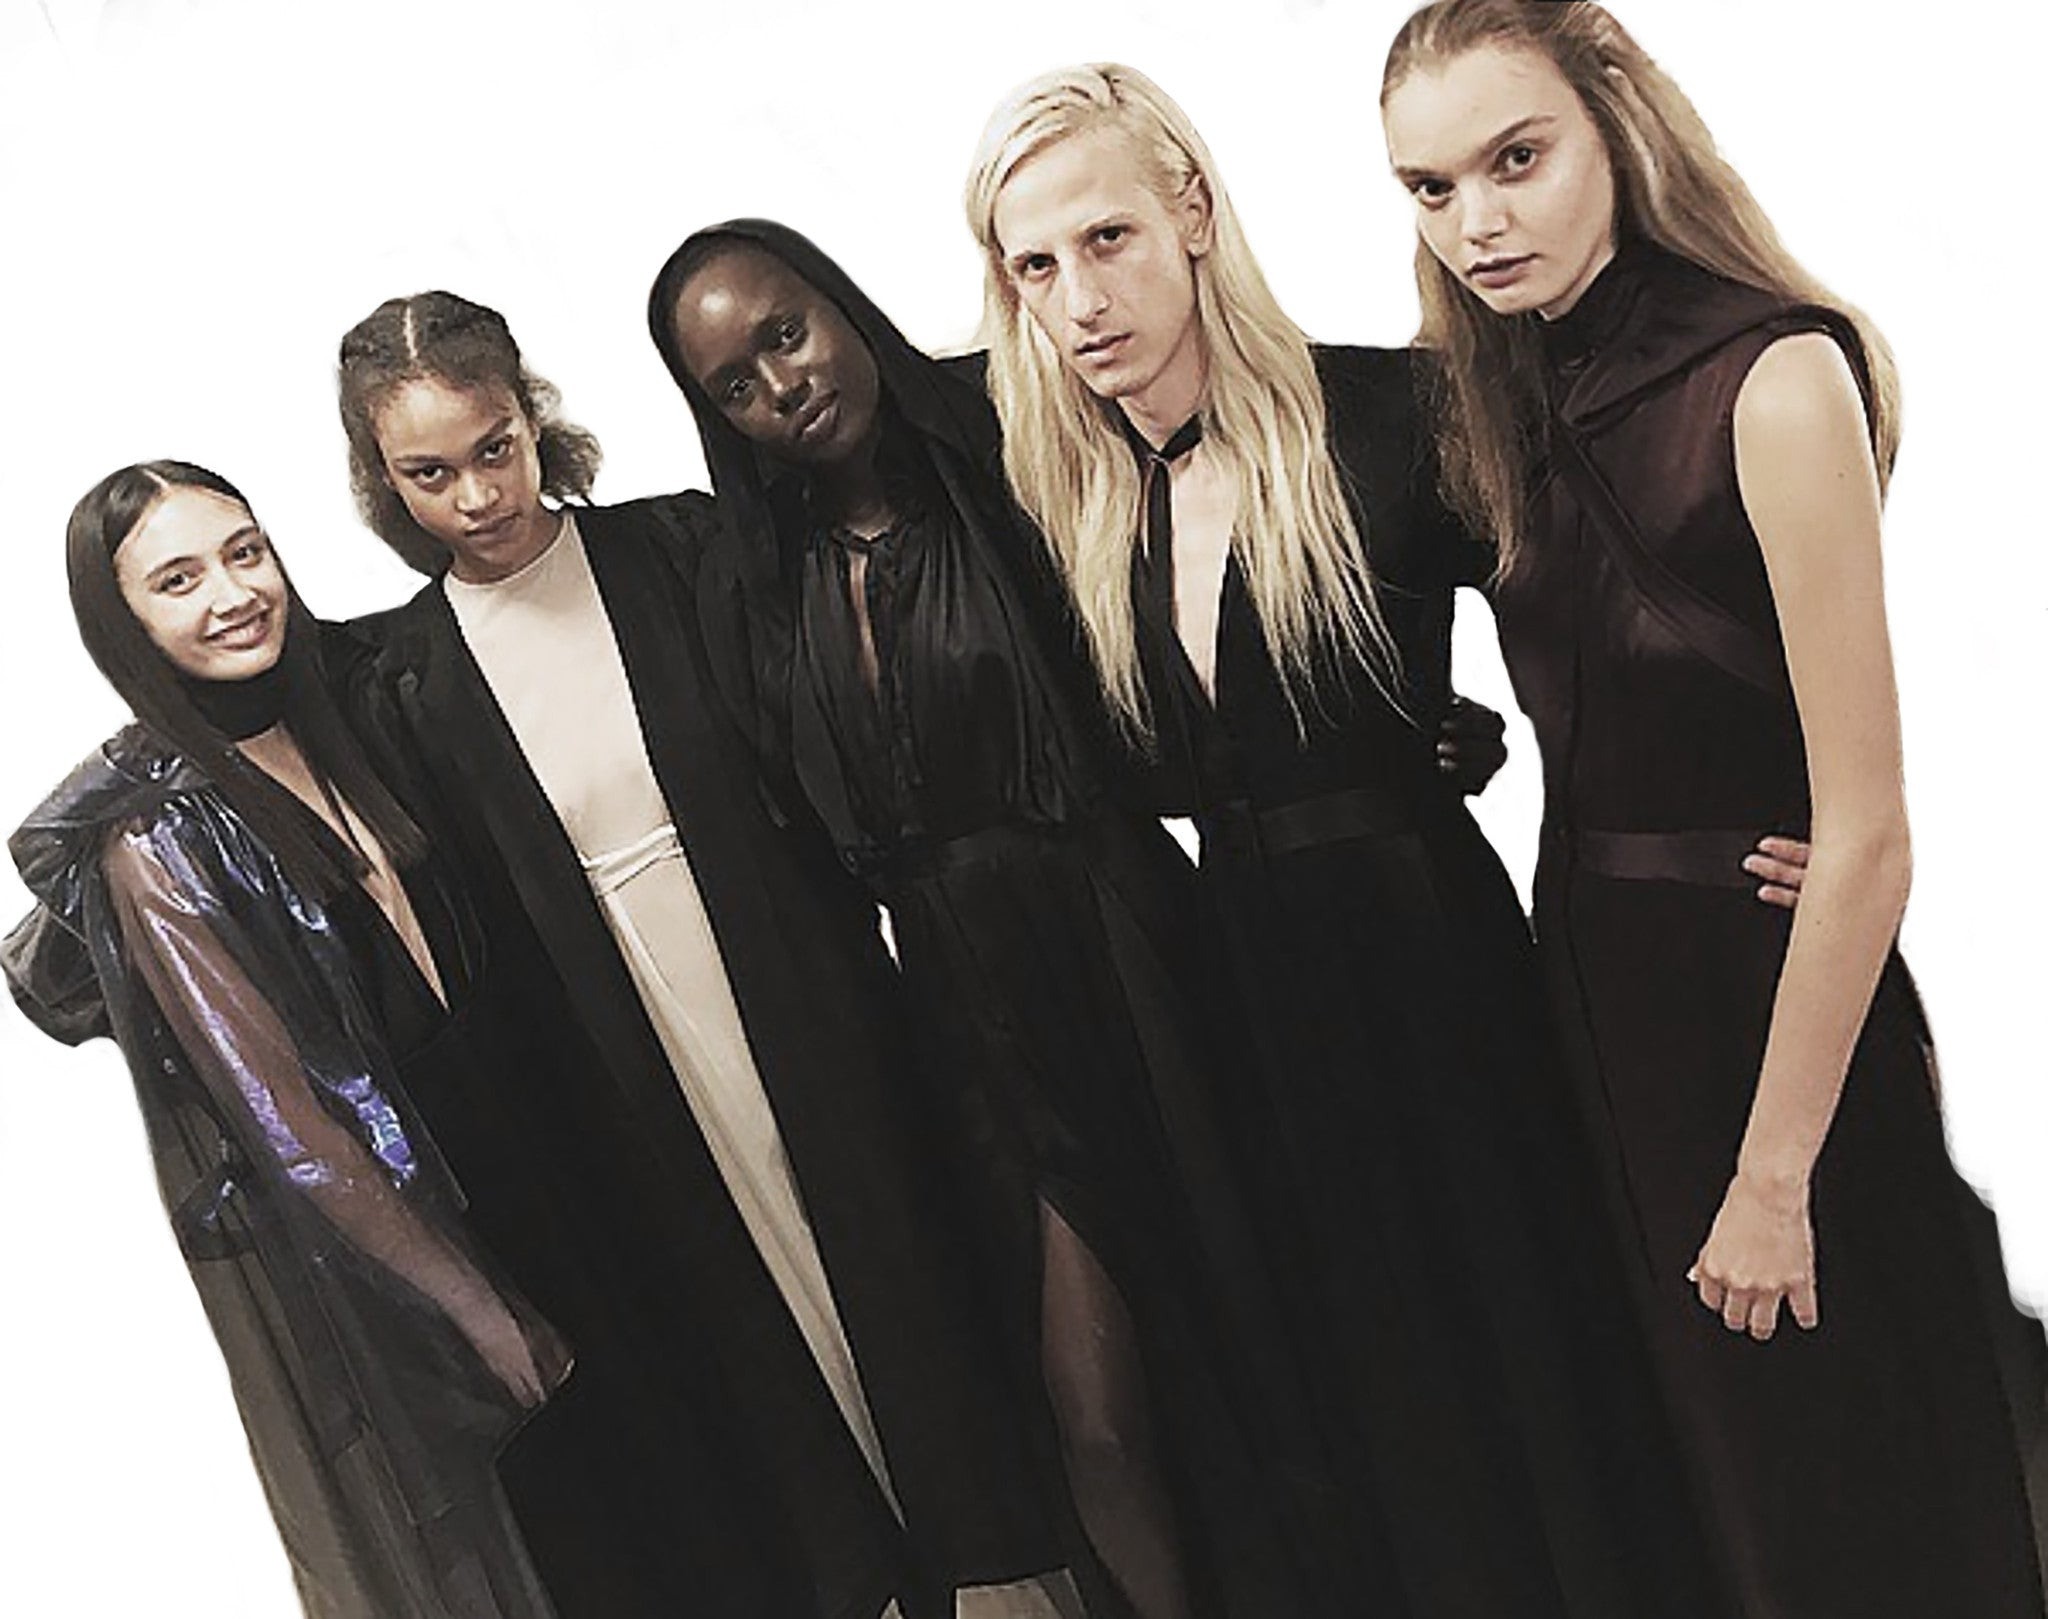 Total Drone Tarsha Orsman Marthe Wiggers Melanie Engel Ajak Deng IMG Models Ryan James Smith Model Wendy Nichol SS17 Fashion Show Runway Designer Black Hooded Sheer Coat Cloak